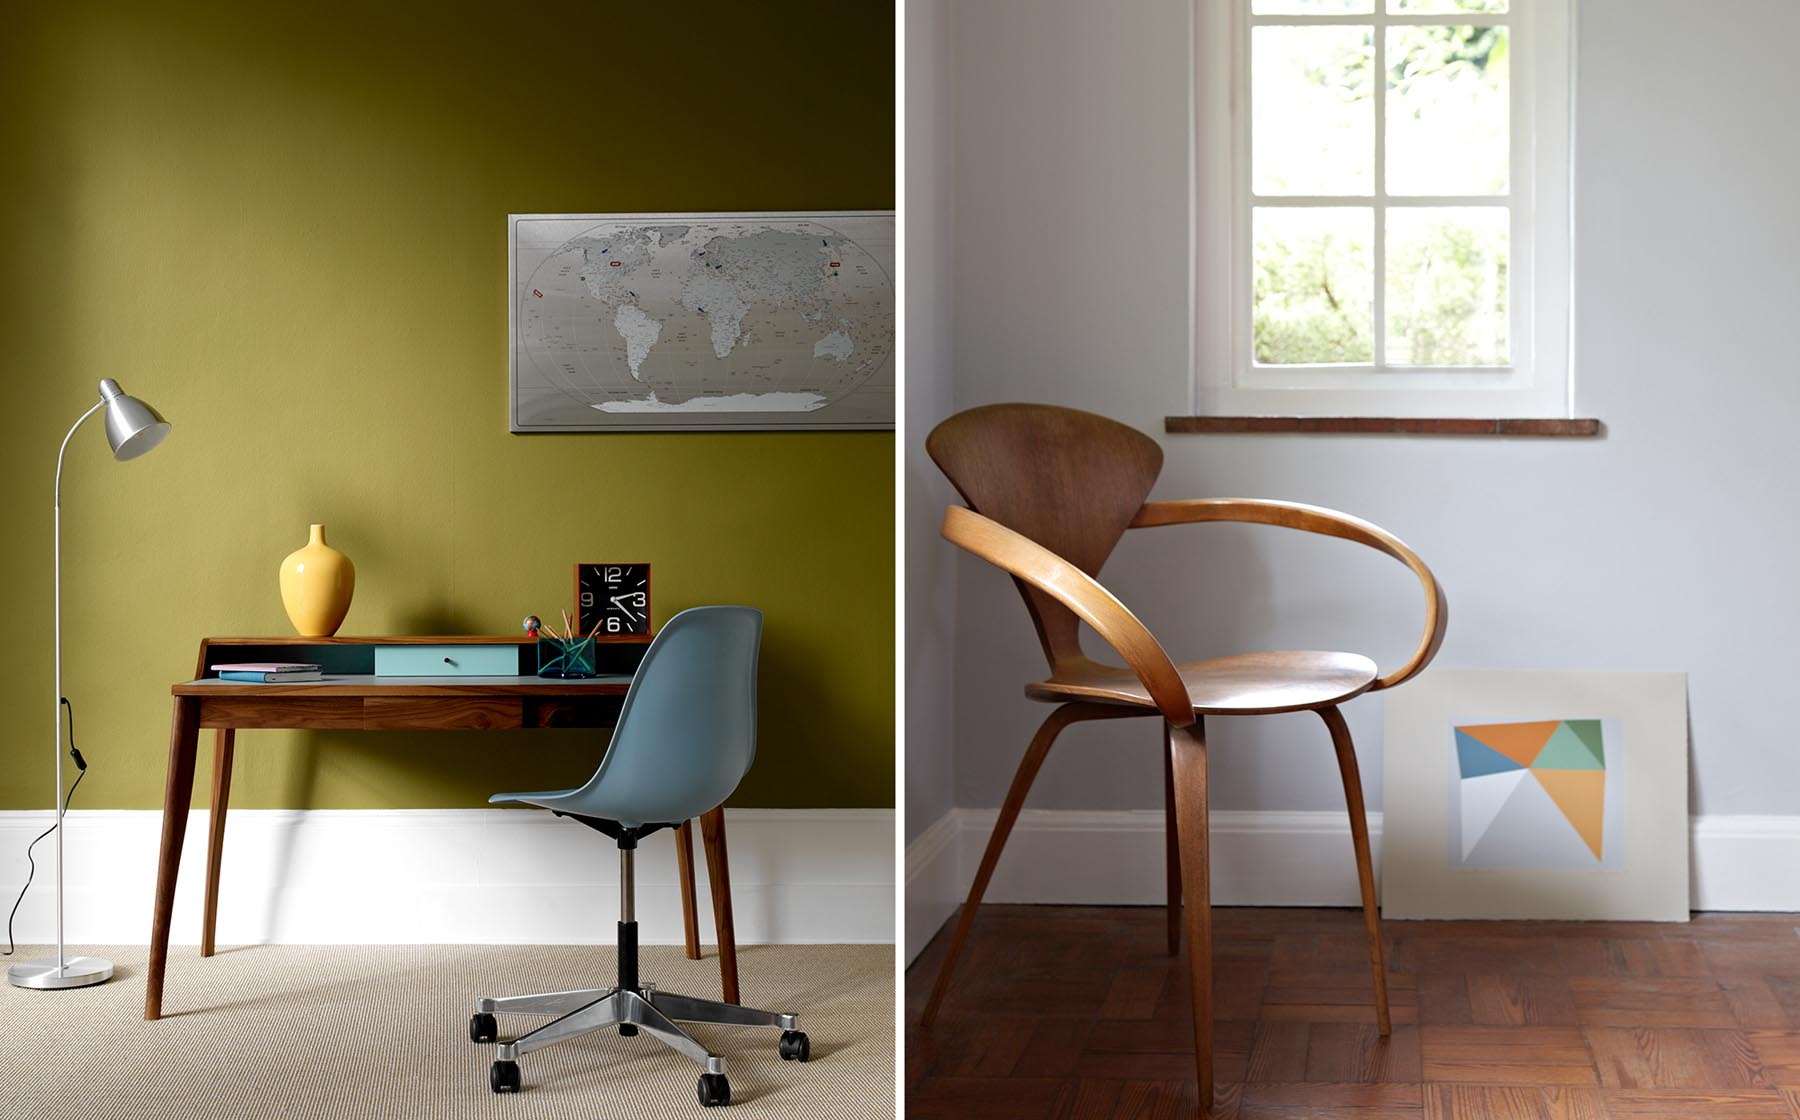 Graham Atkins-Hughes Desk & Chair